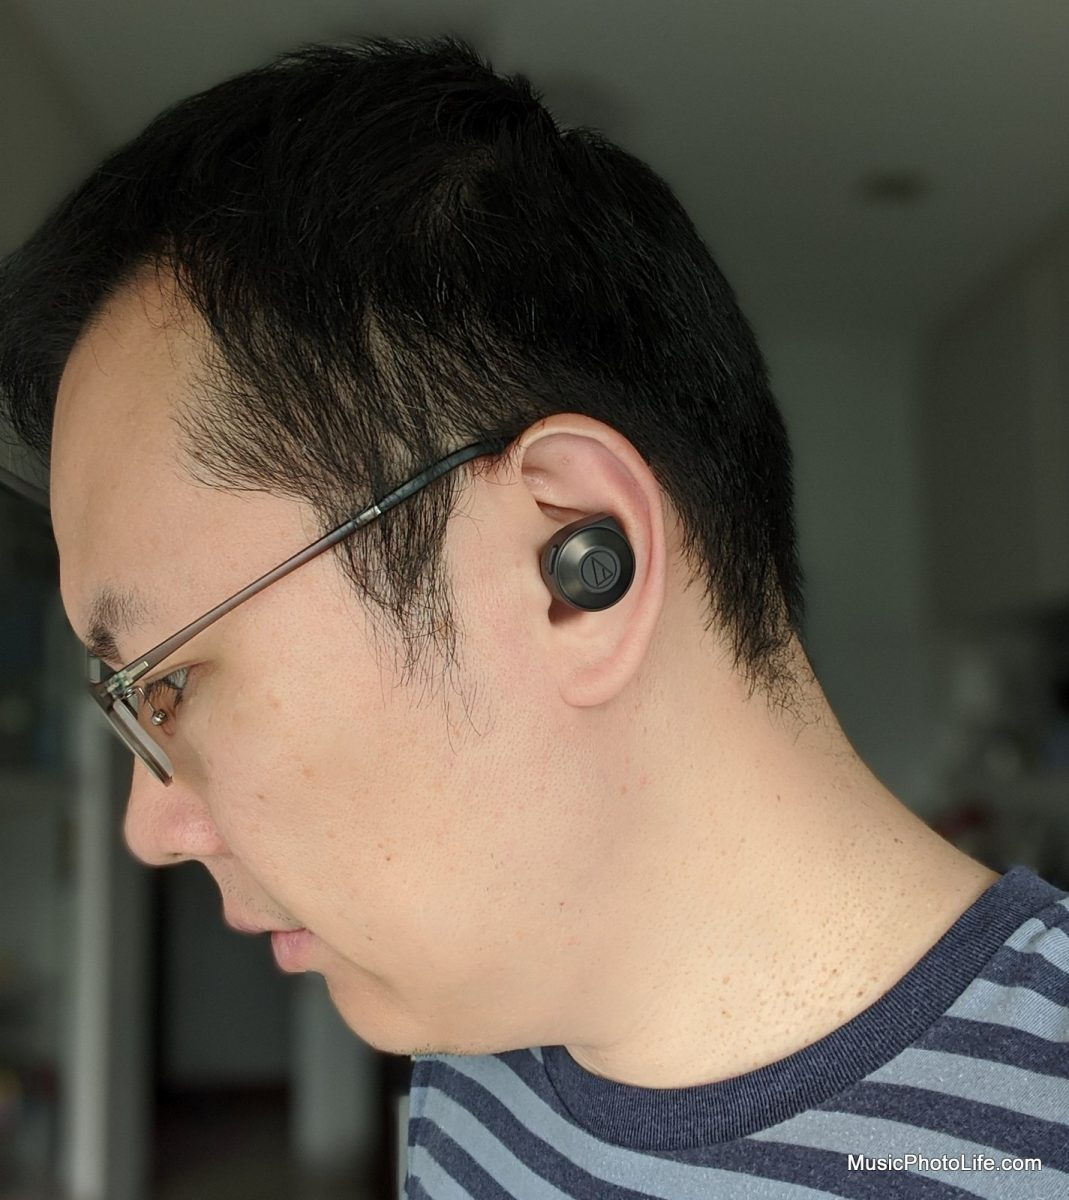 Audio-Technica ATH-CKS5TW wearing in ears